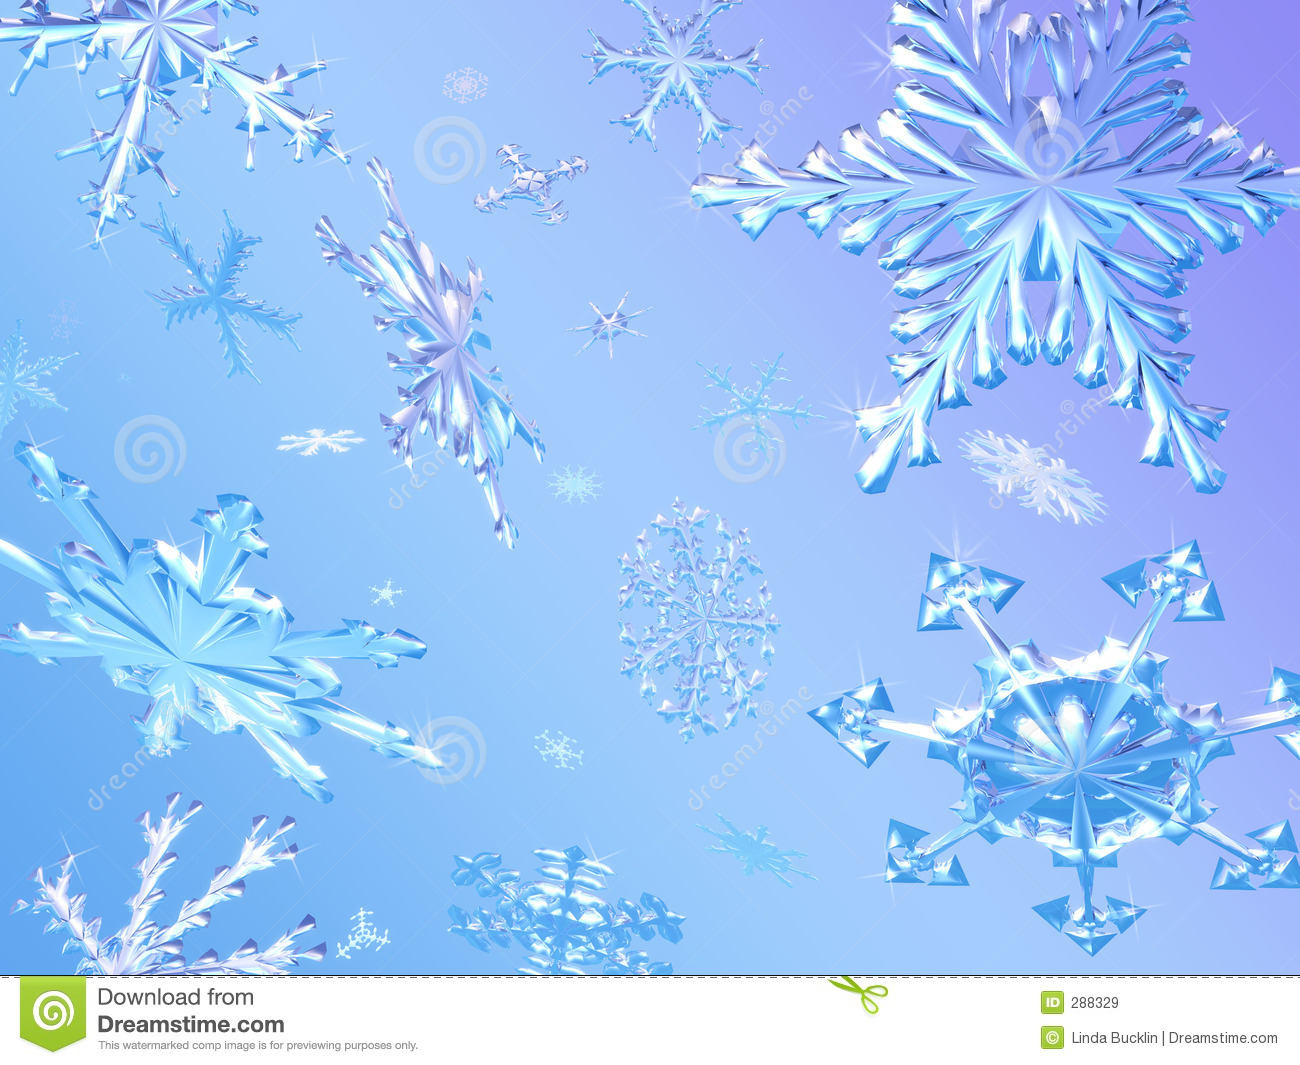 Download Snow Fall Animated Wallpaper Snowflakes Falling Stock Illustration Illustration Of